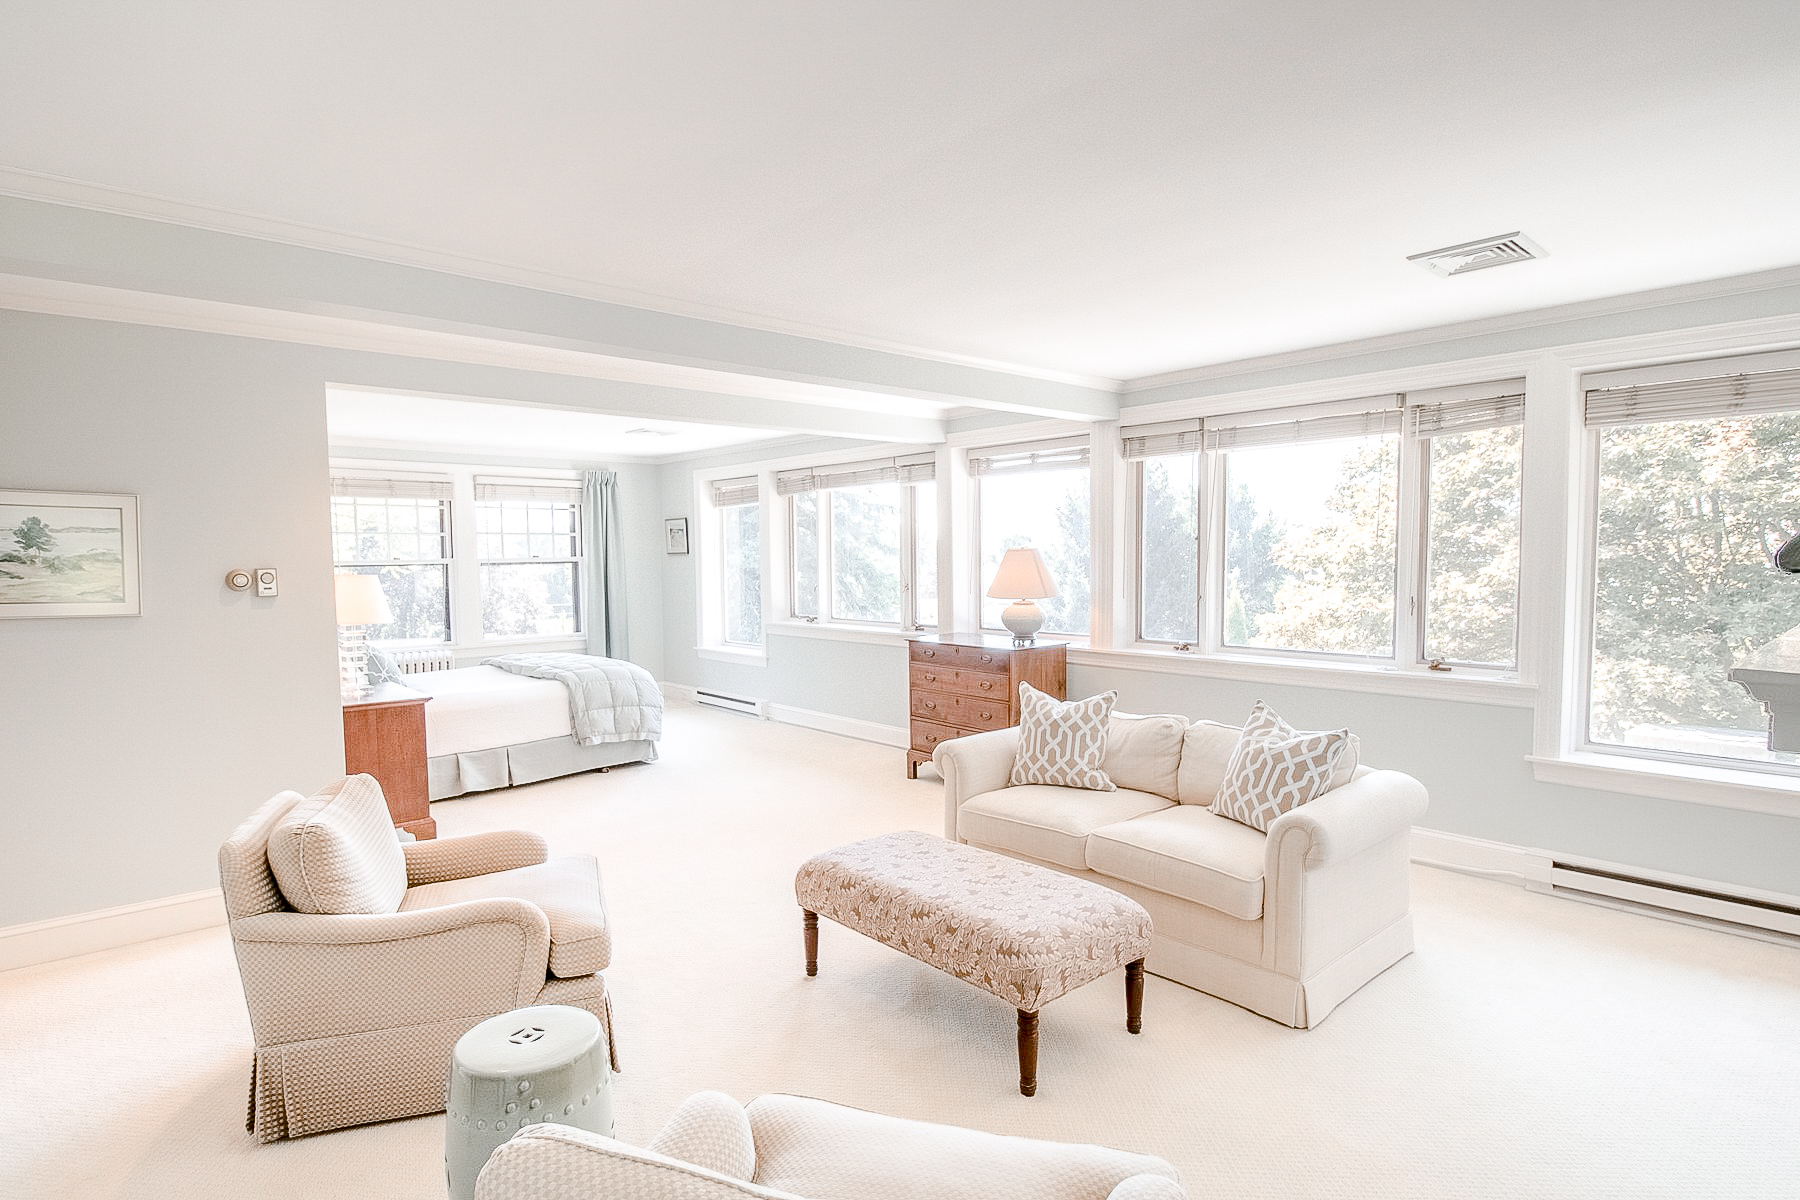 Luxe_and_Livable_Interior_Design_Blog_by_Maloney_Interiors_Mott_and_Chase_Realty_19.jpg